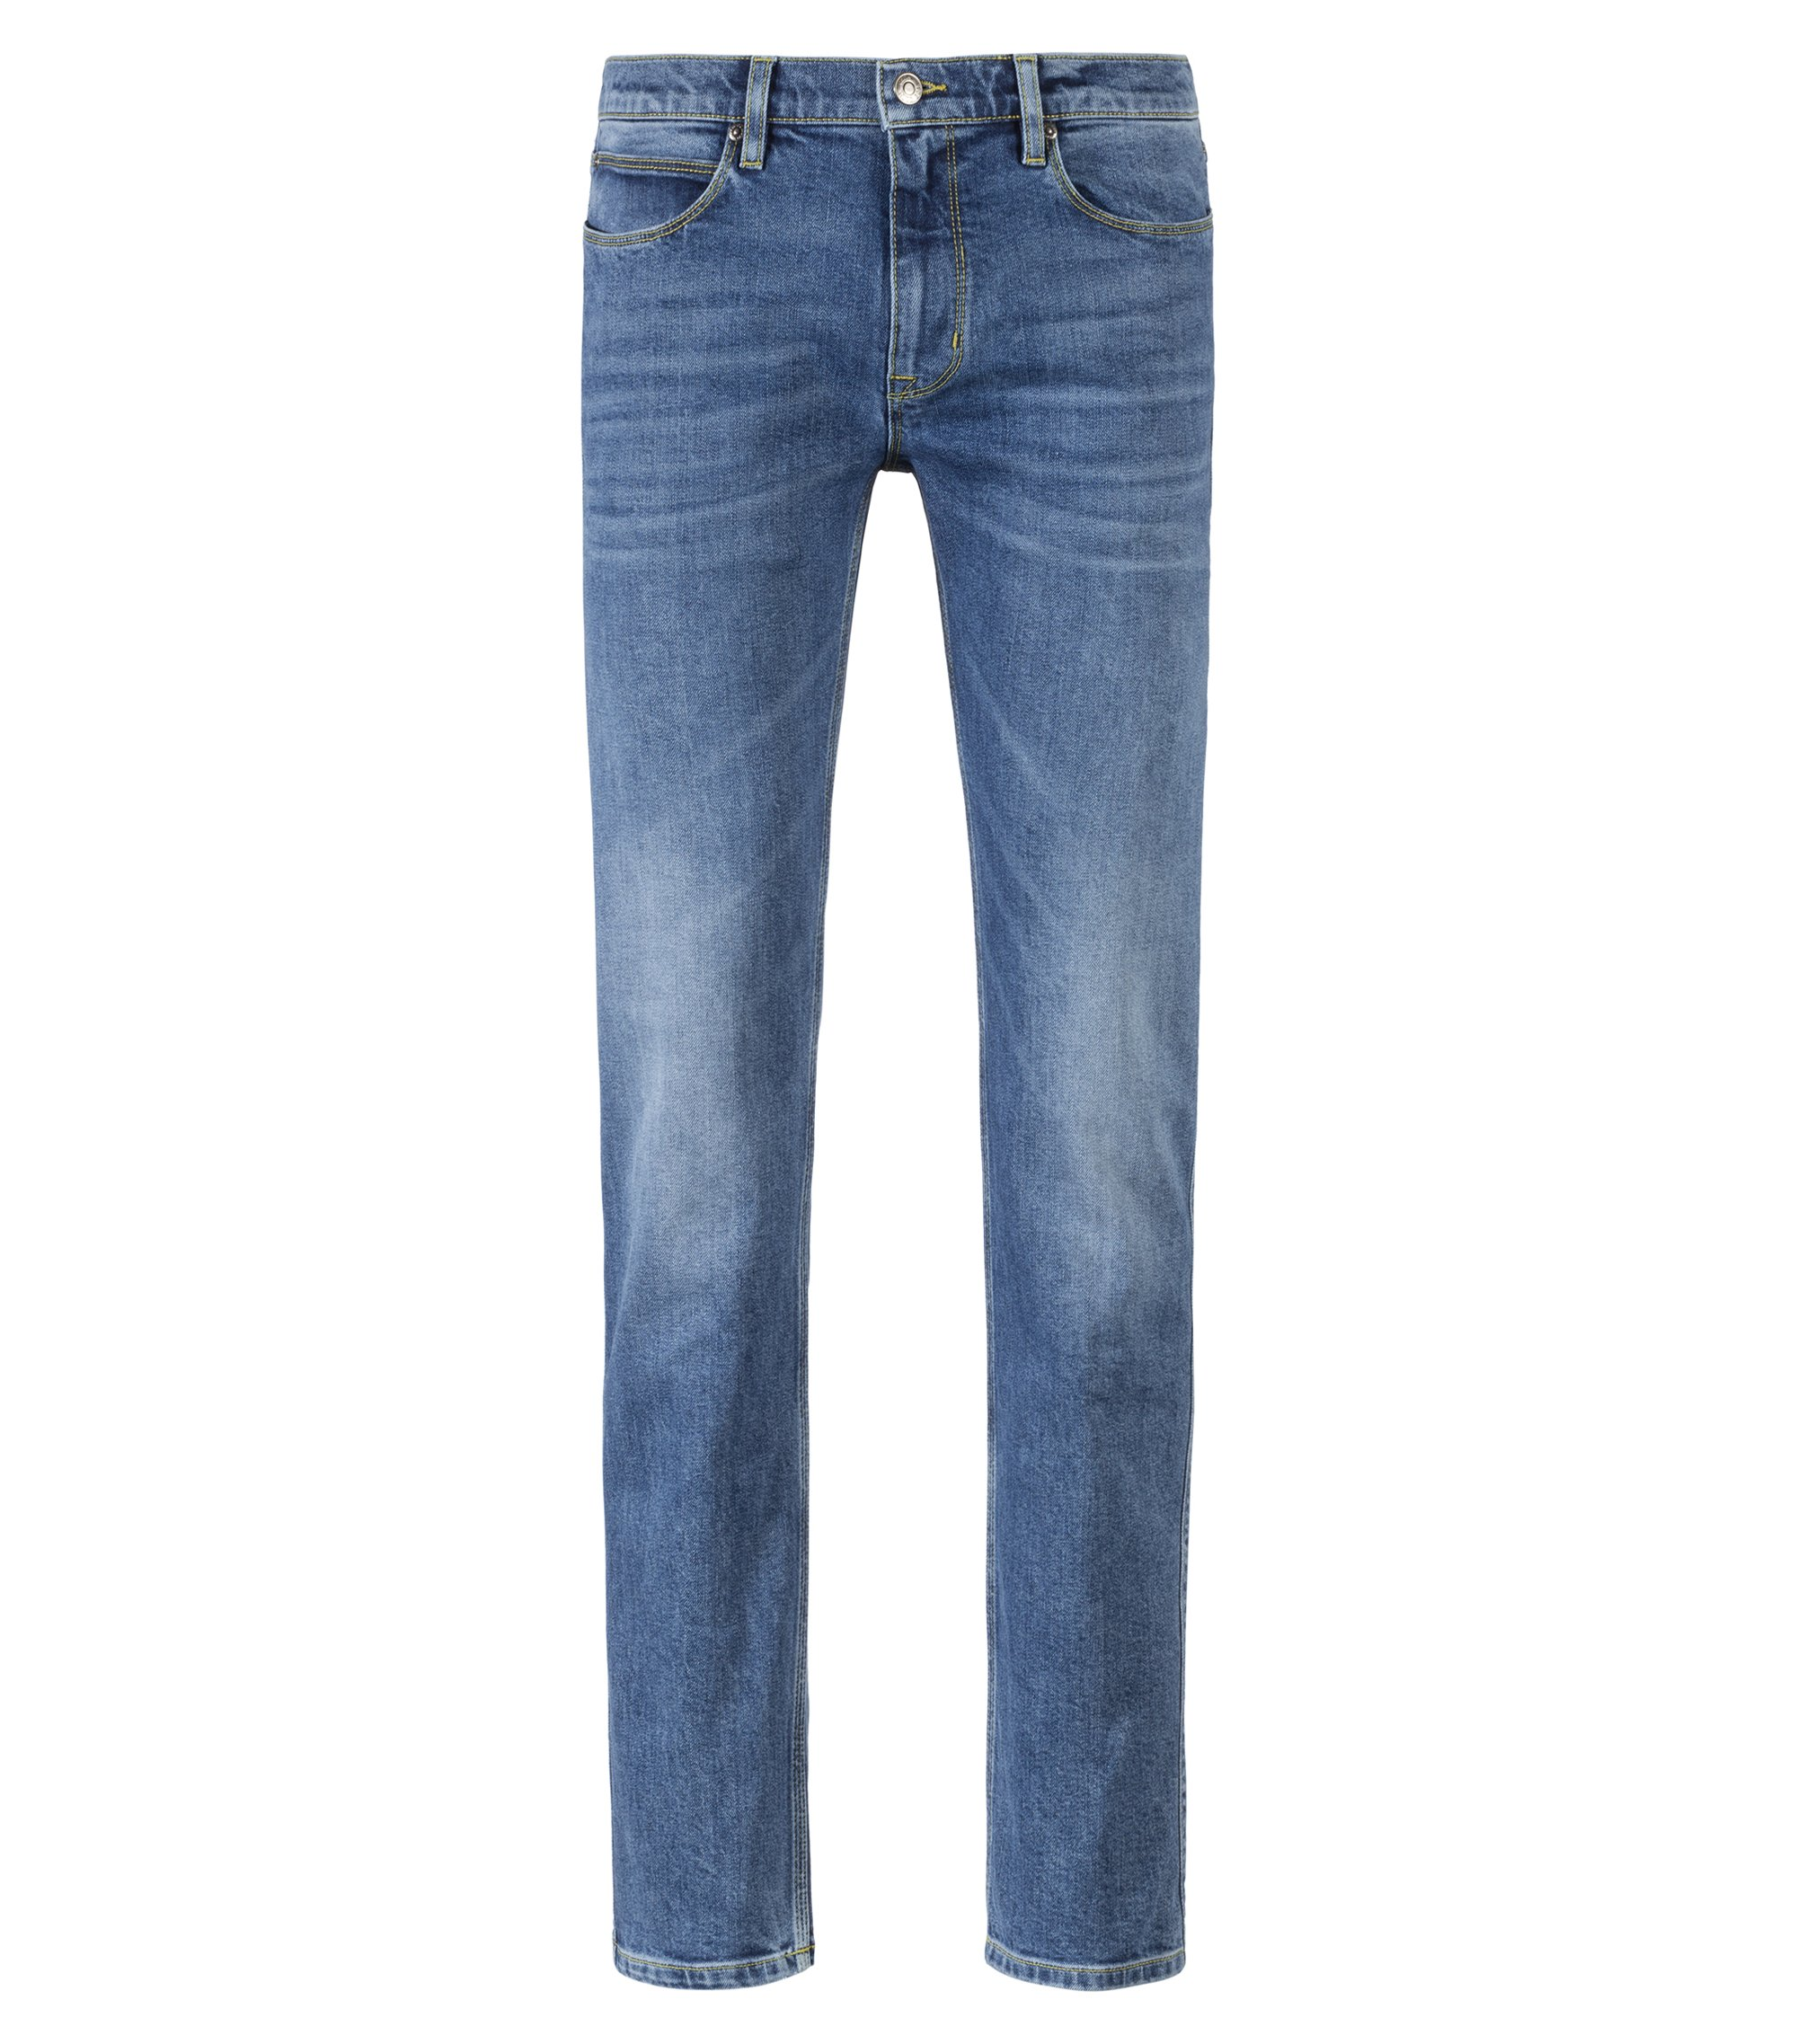 Slim-Fit Jeans aus Stretch-Denim mit Kontrastnähten, Blau